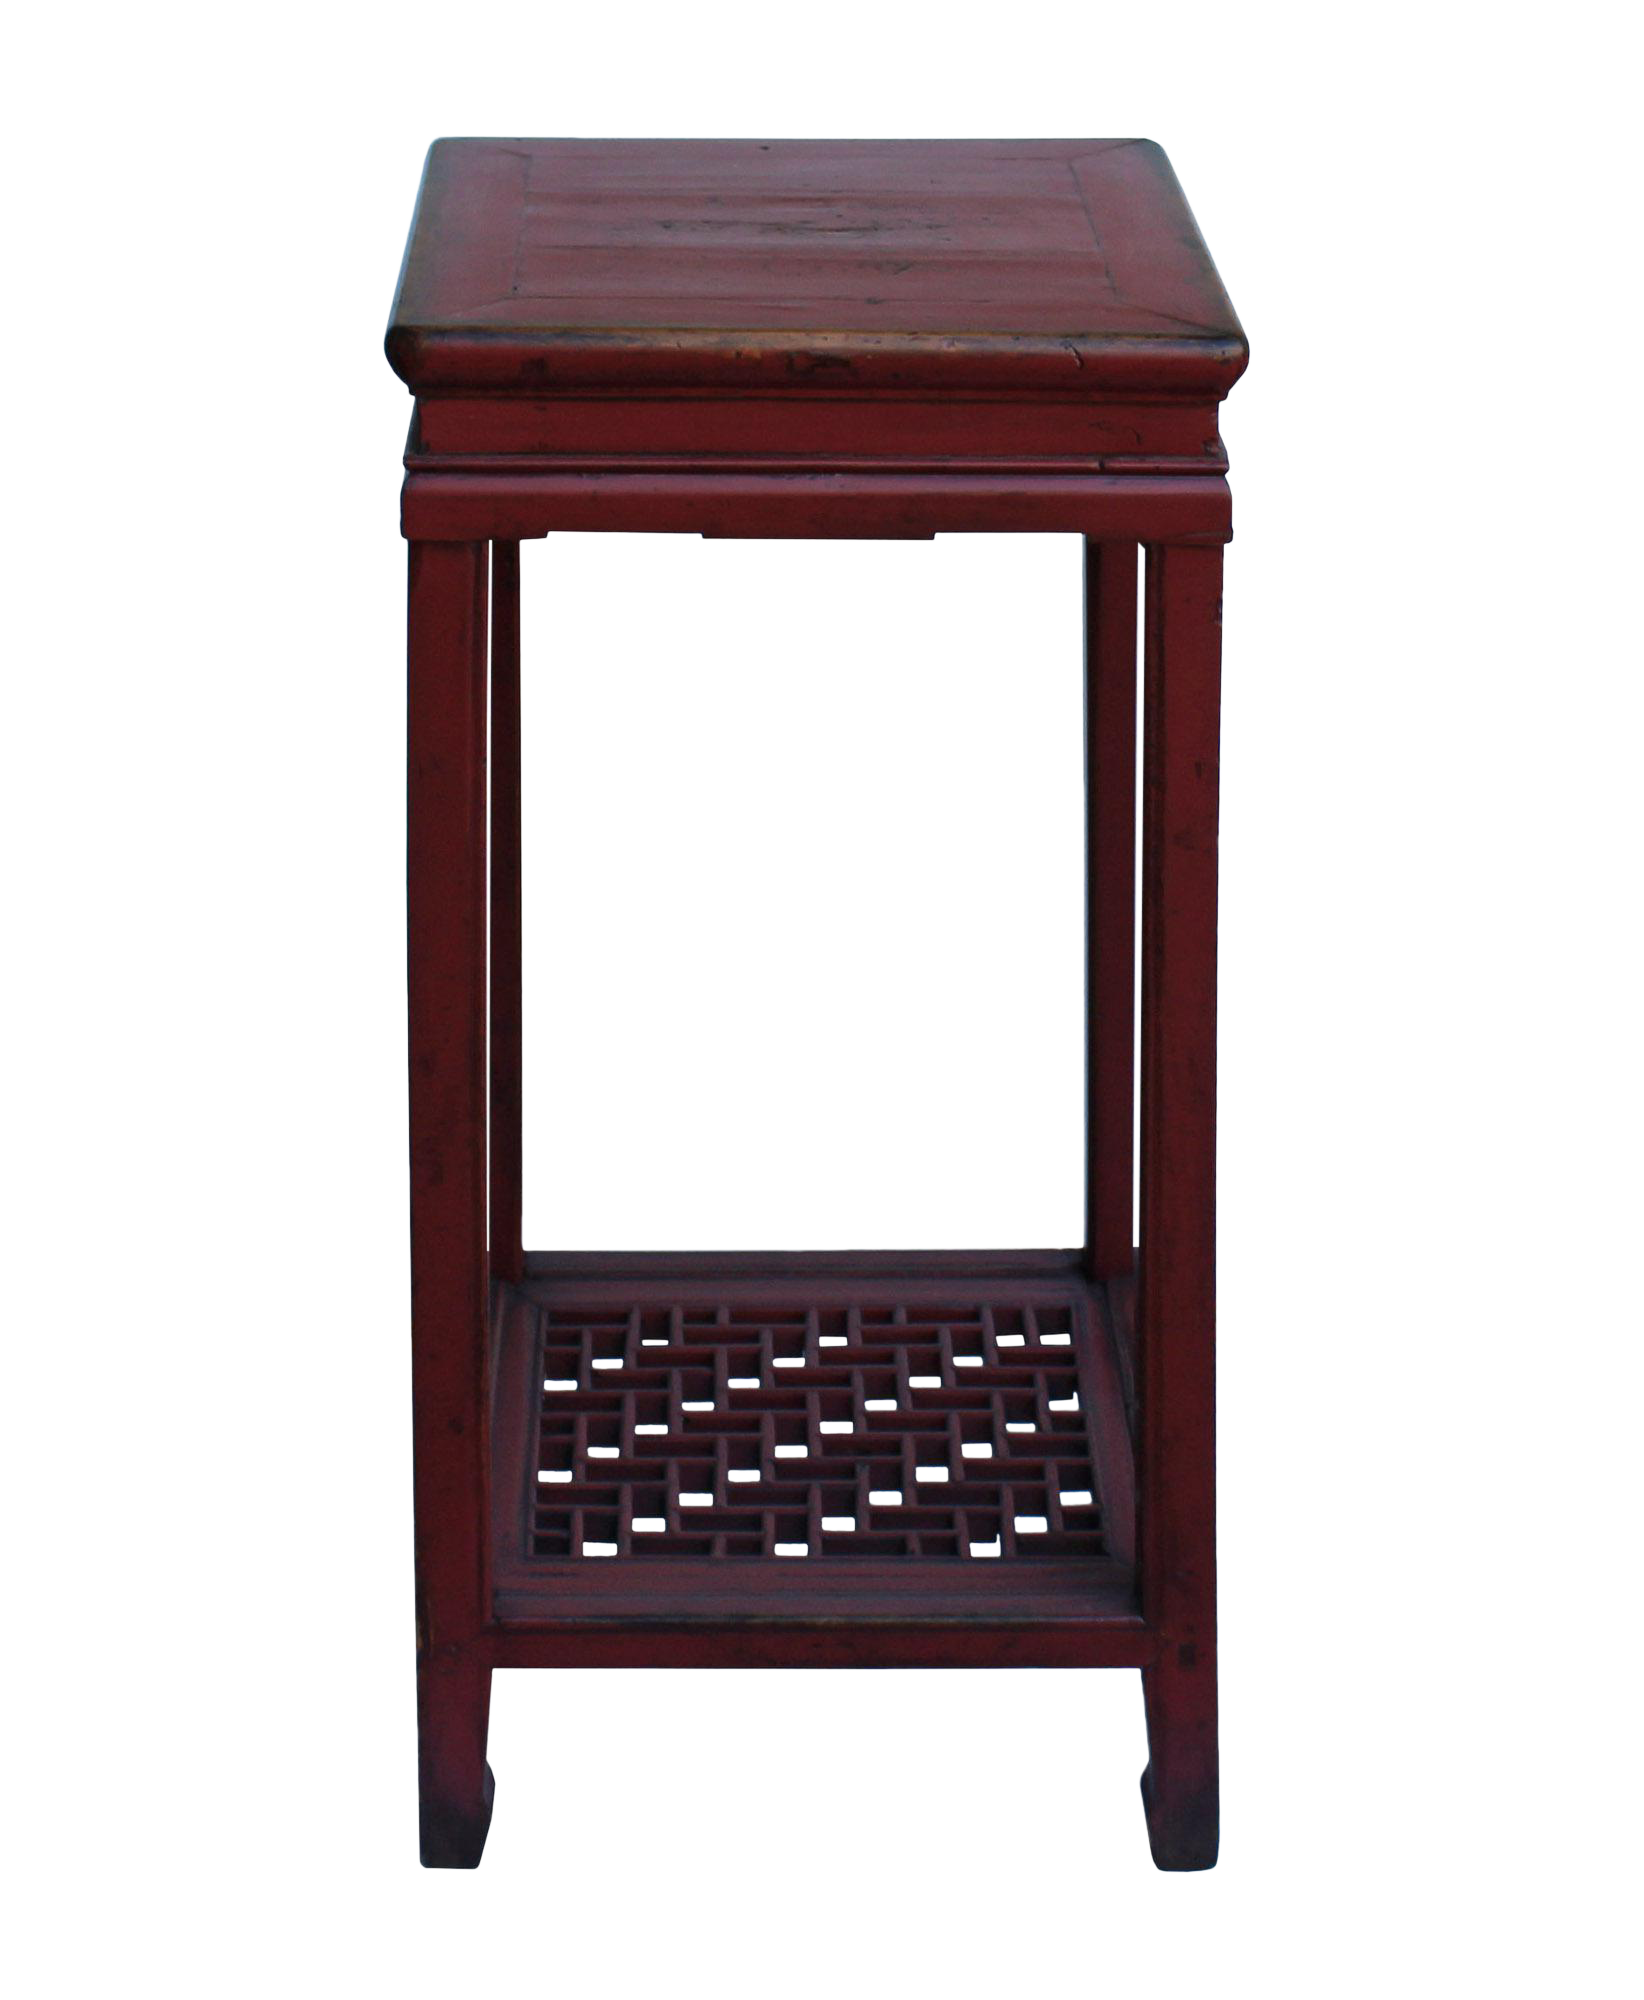 Chinese Square Distressed Red Wood Pedestal Plant Stand Table